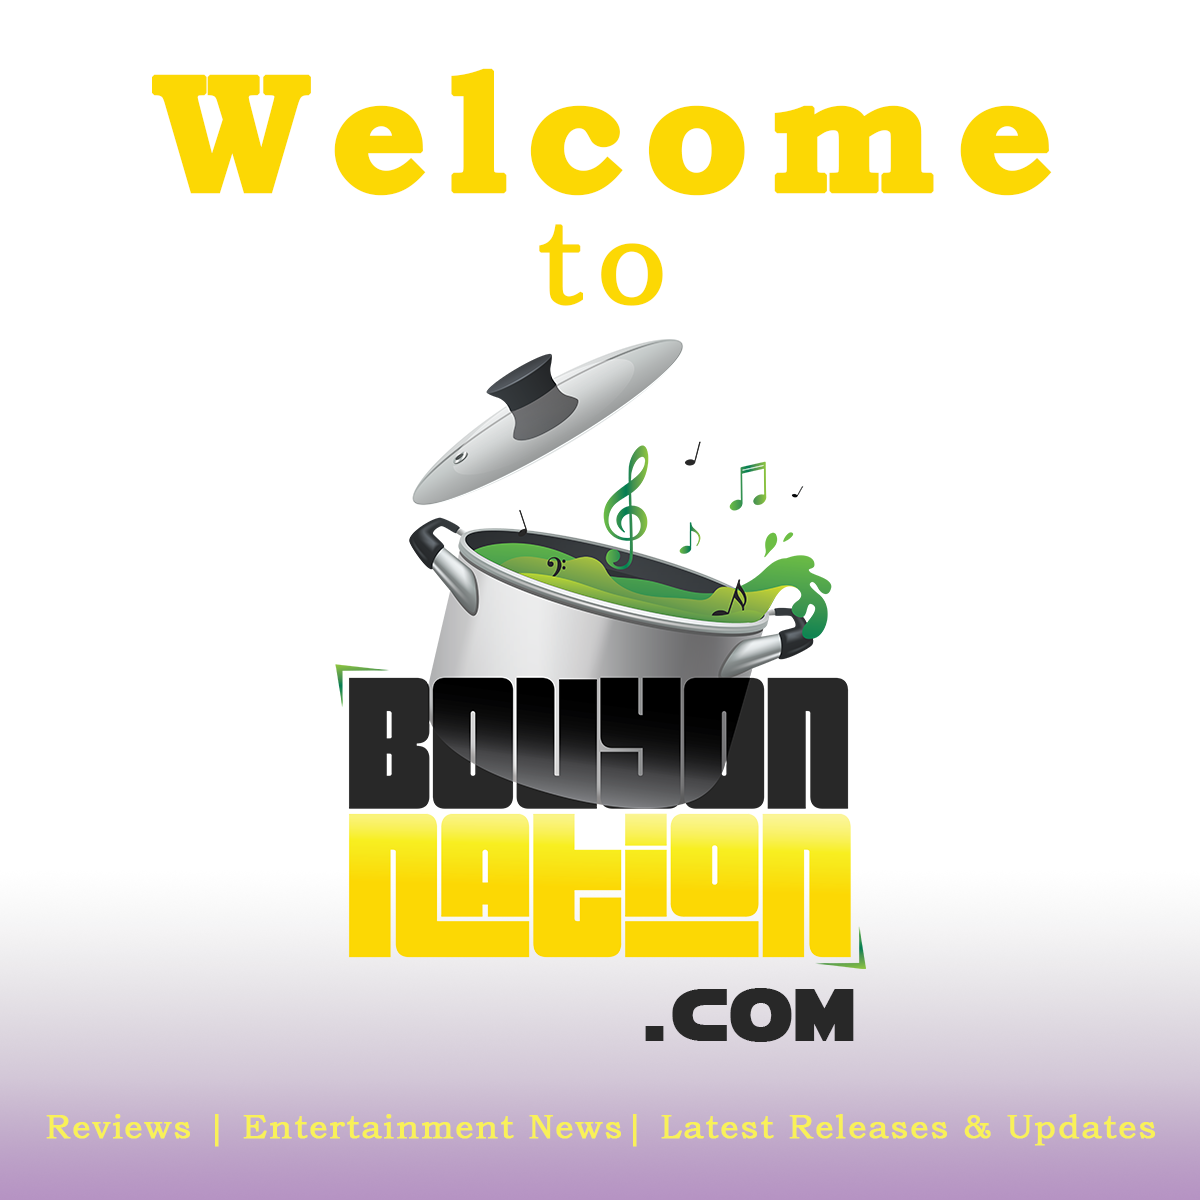 Welcome to BouyonNation.com